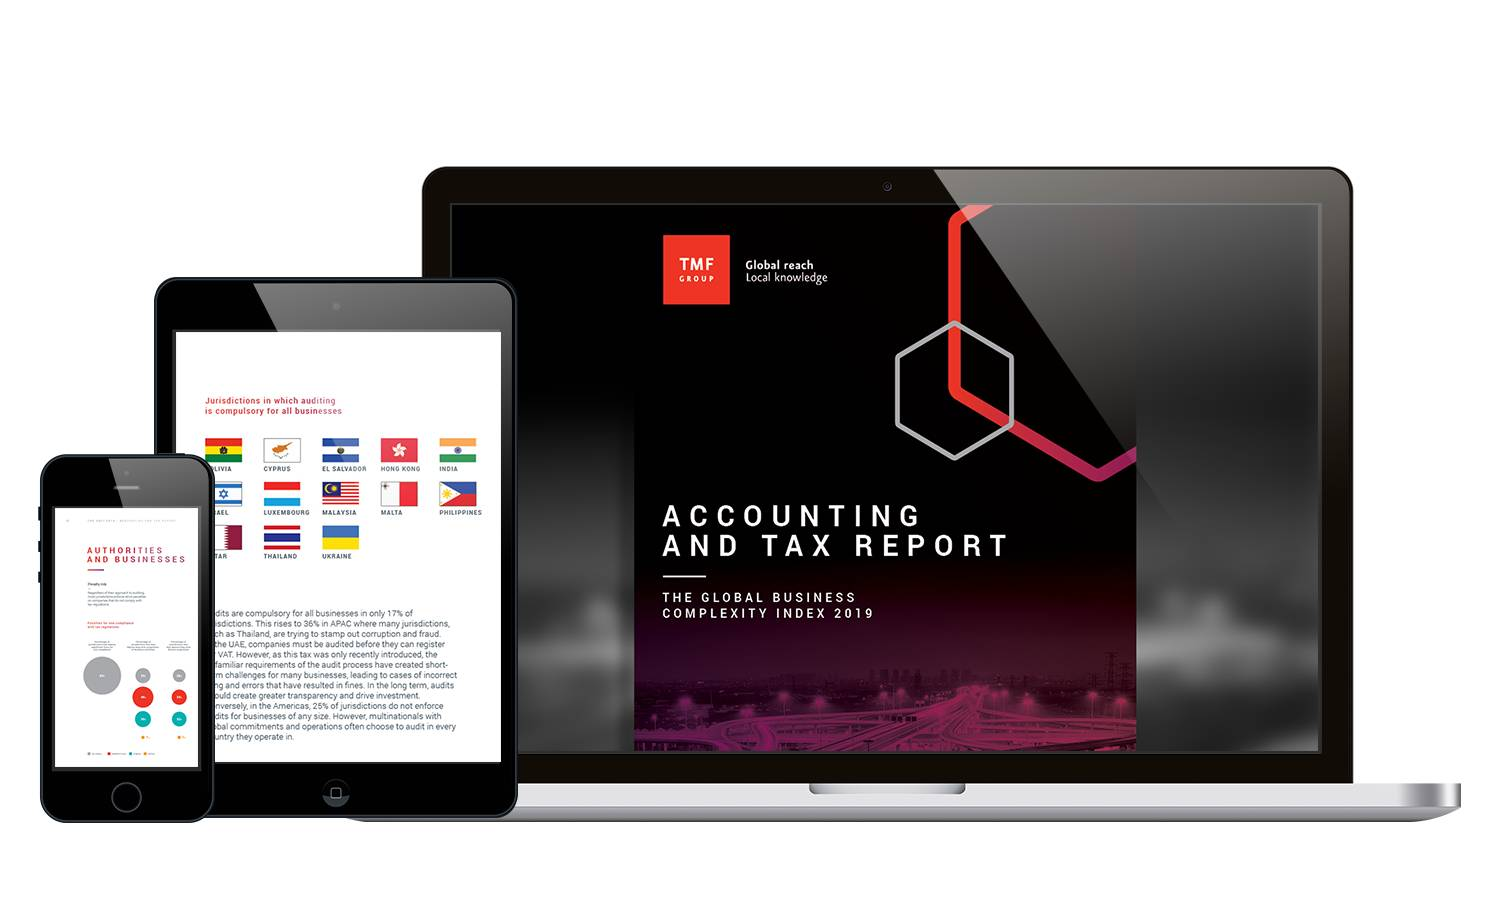 View of the accounting and tax global business complexity index